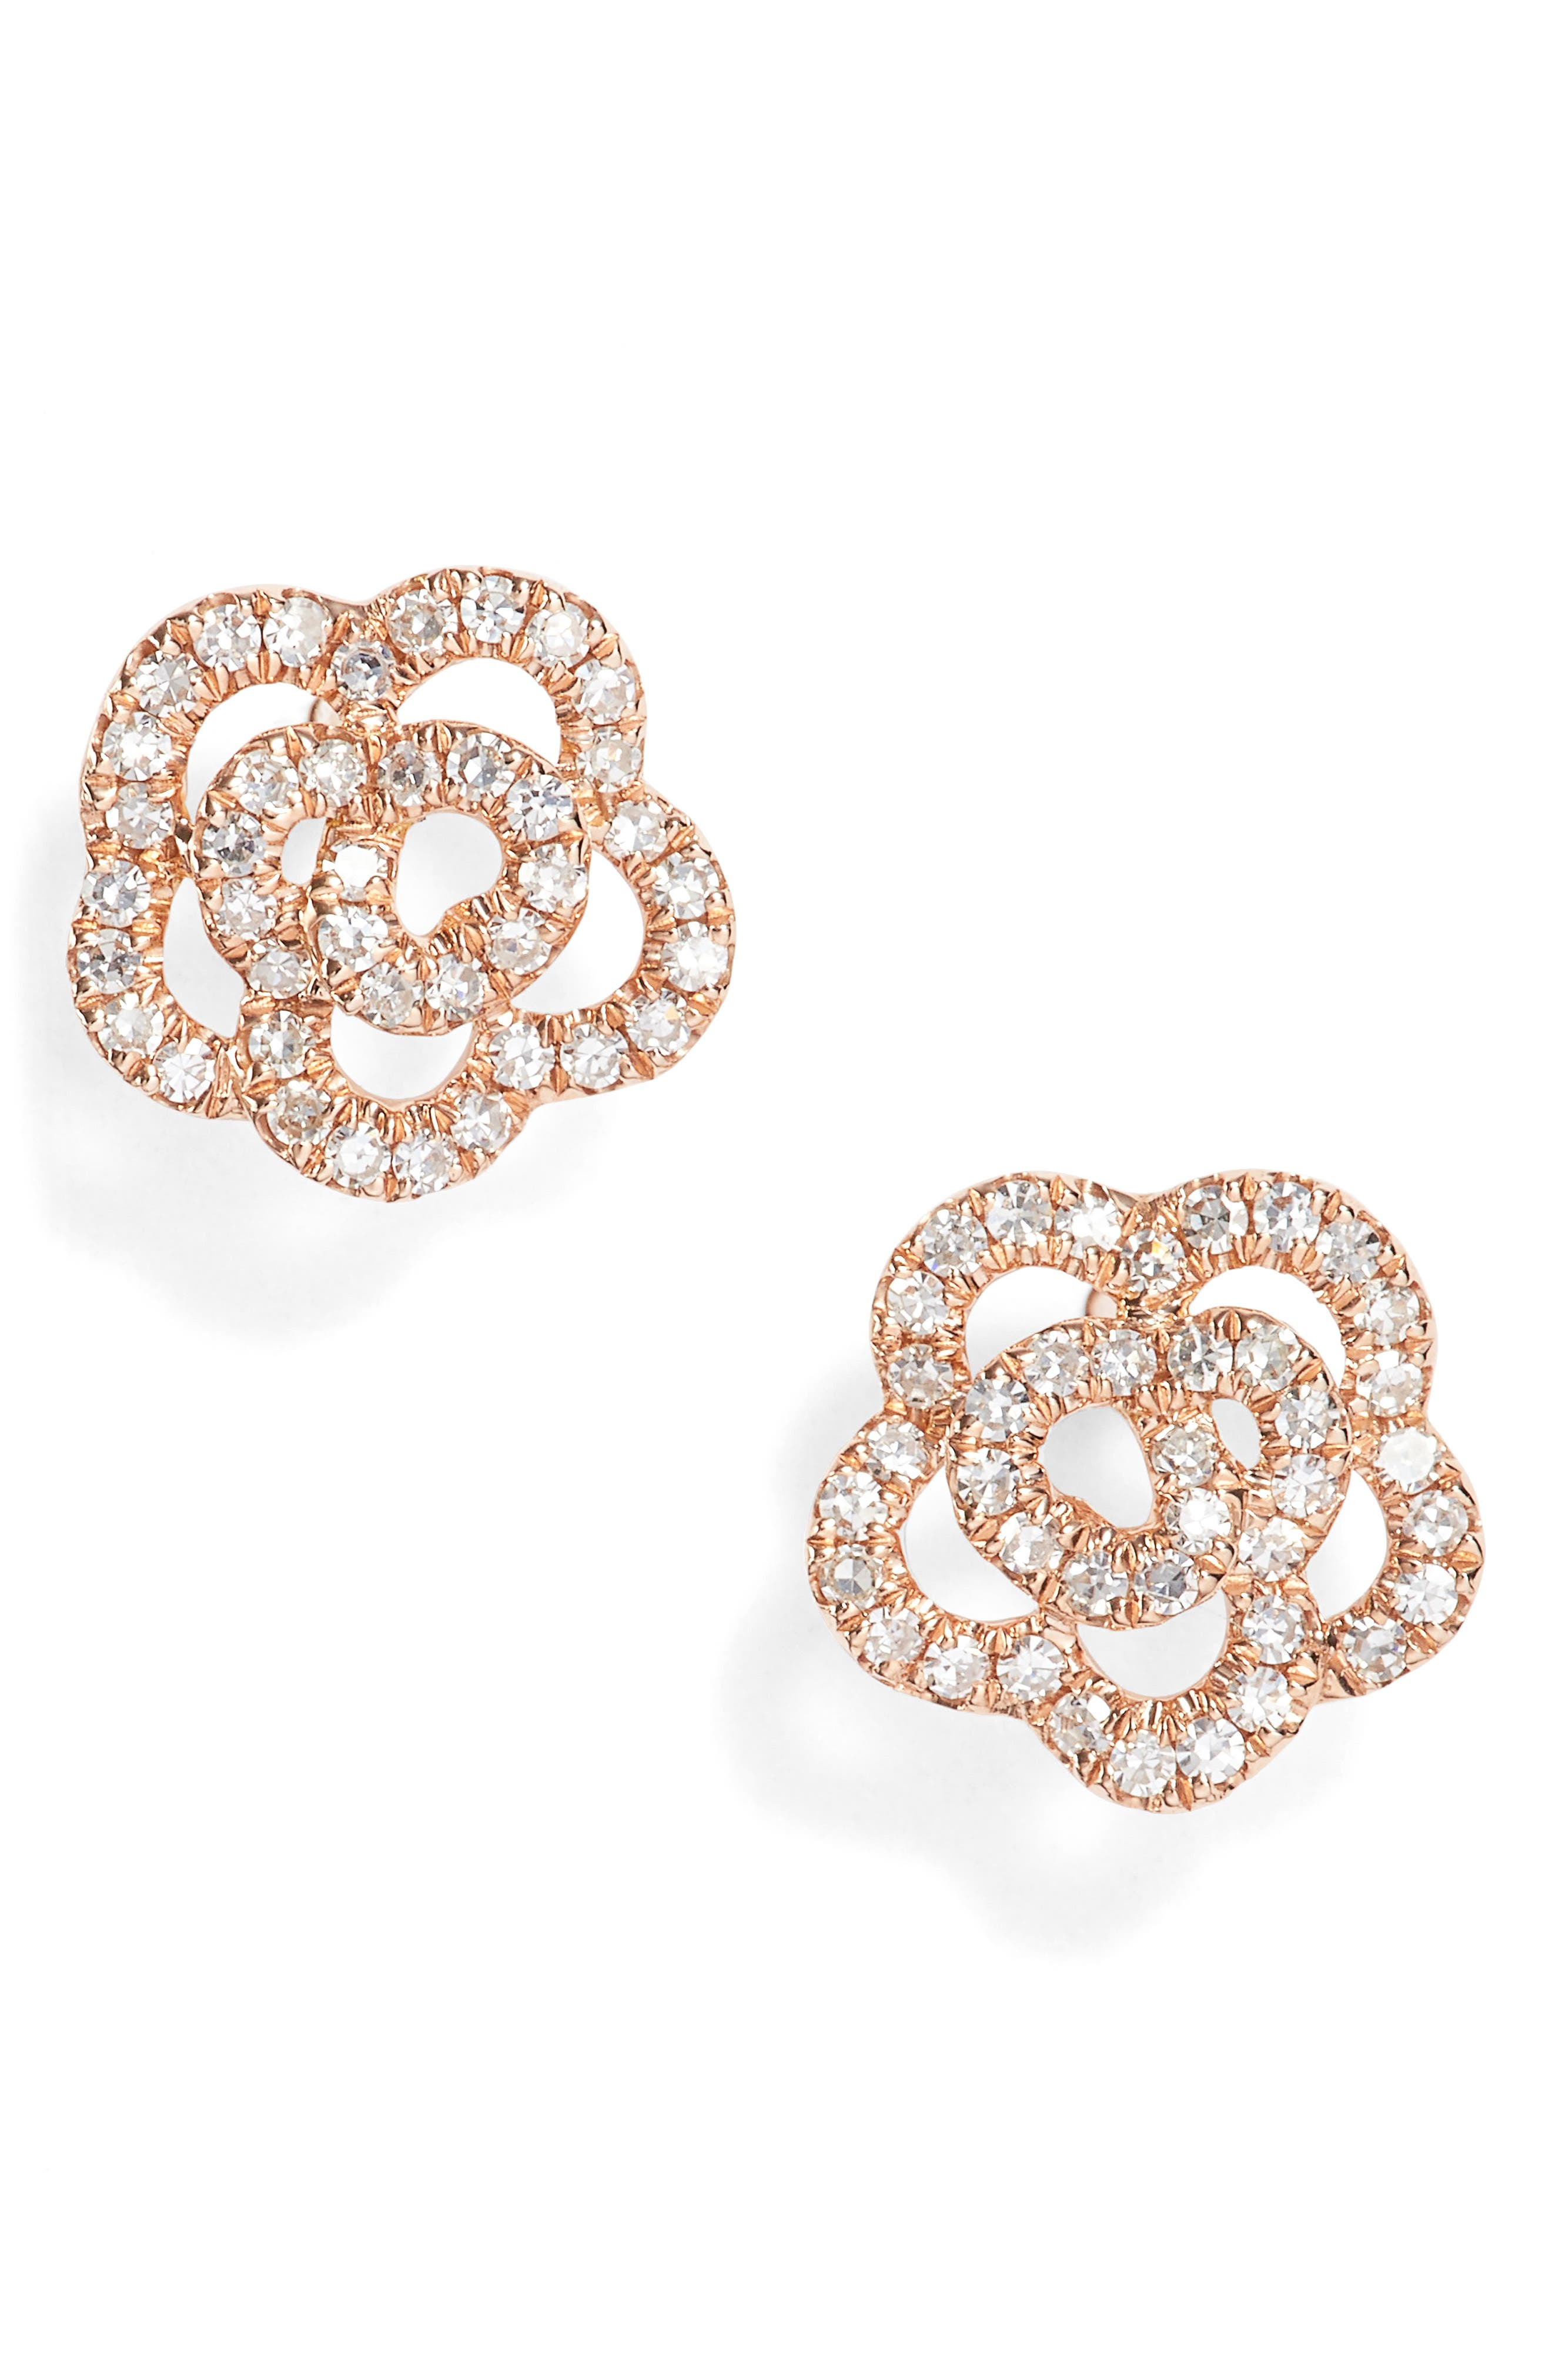 Rose Diamond Stud Earrings,                         Main,                         color, Rose Gold